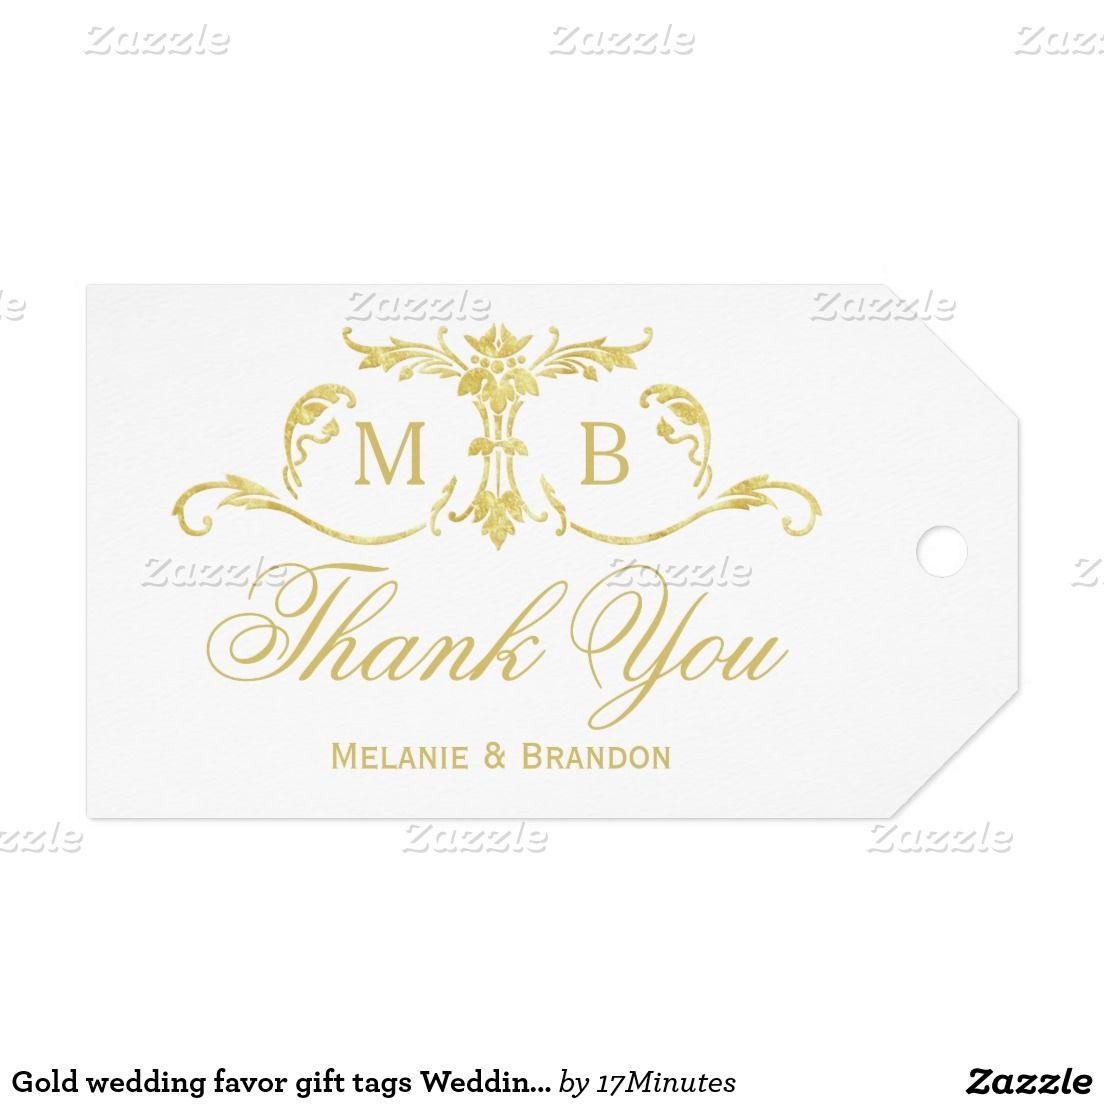 Gold wedding favor gift tags Wedding Thank You tag | Gold wedding ...